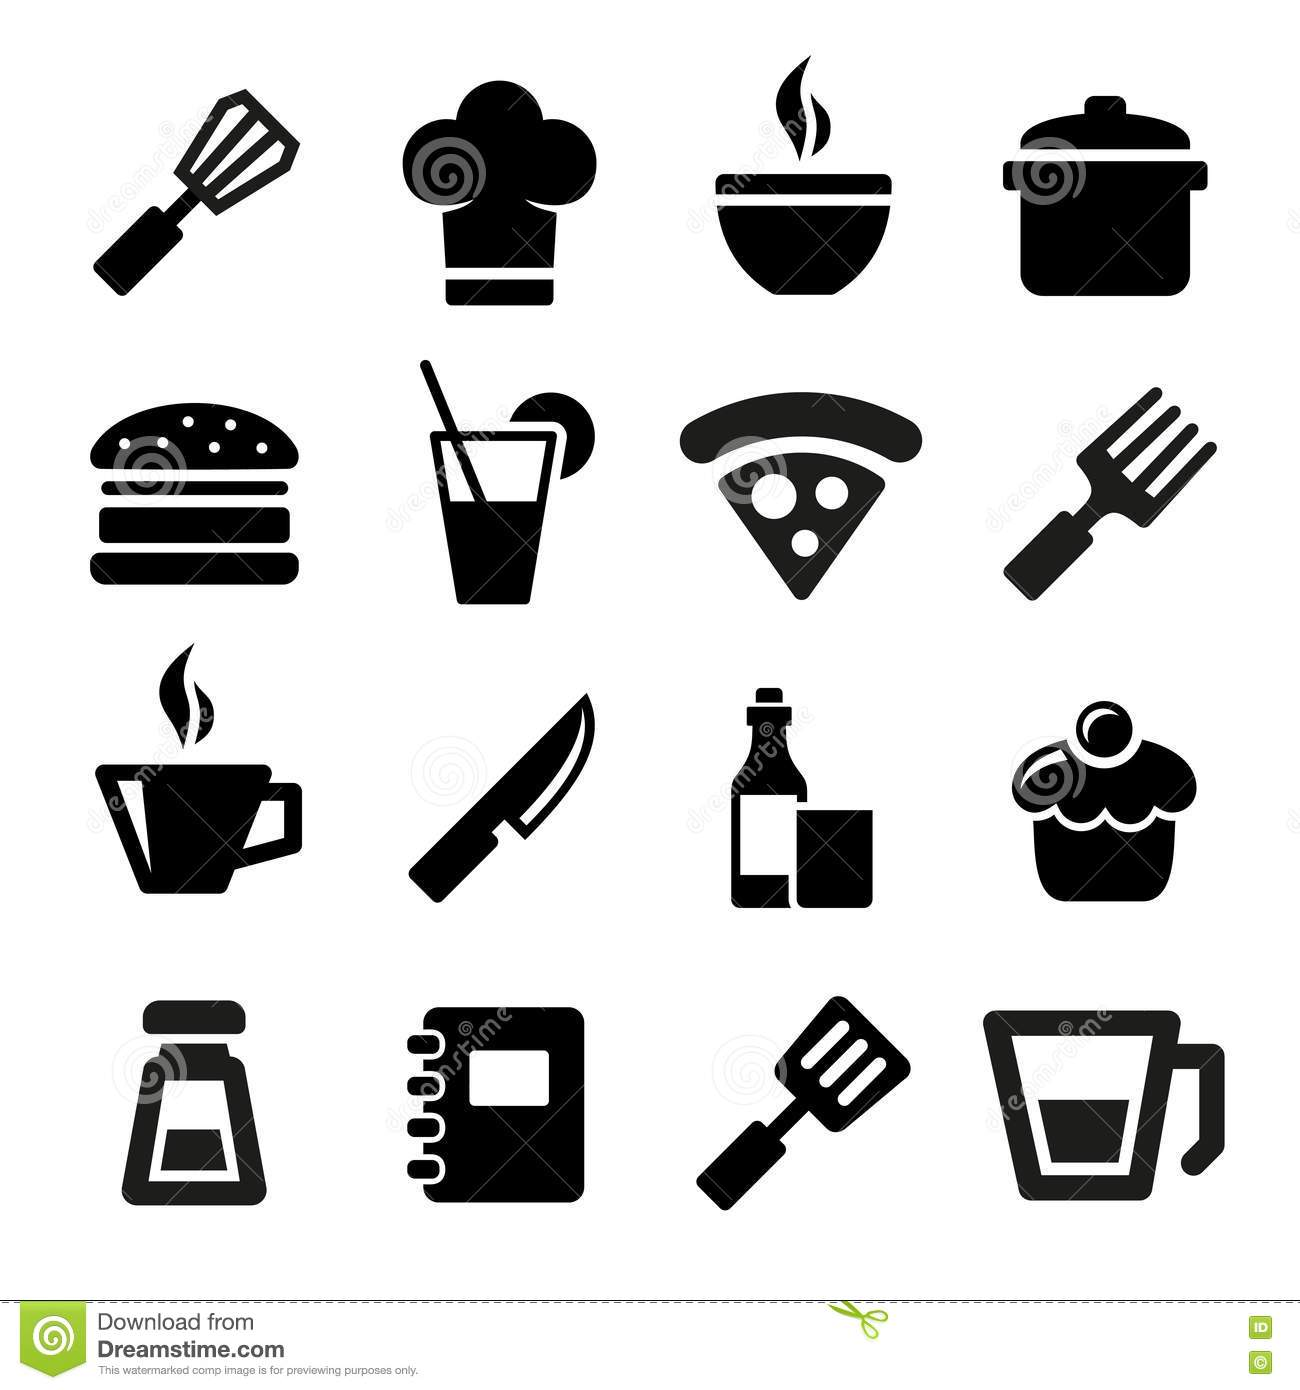 Portable Charcoal Barbecue Coloring Page 18190 besides Spatula Barbeque Fork Icon Cartoon Style besides Bbq Clipart furthermore Free Chef Hat Clipart 32196 besides Kochm C3 BCtze sch C3 BCrzen. on bbq cooking